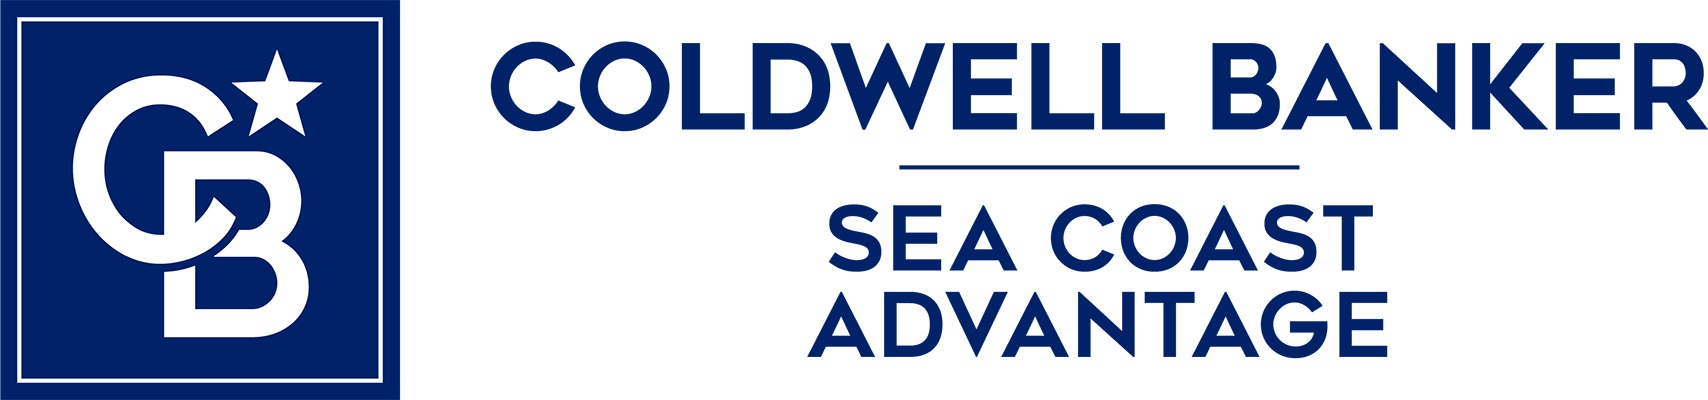 Ray Repage - Coldwell Banker Sea Coast Advantage Realty